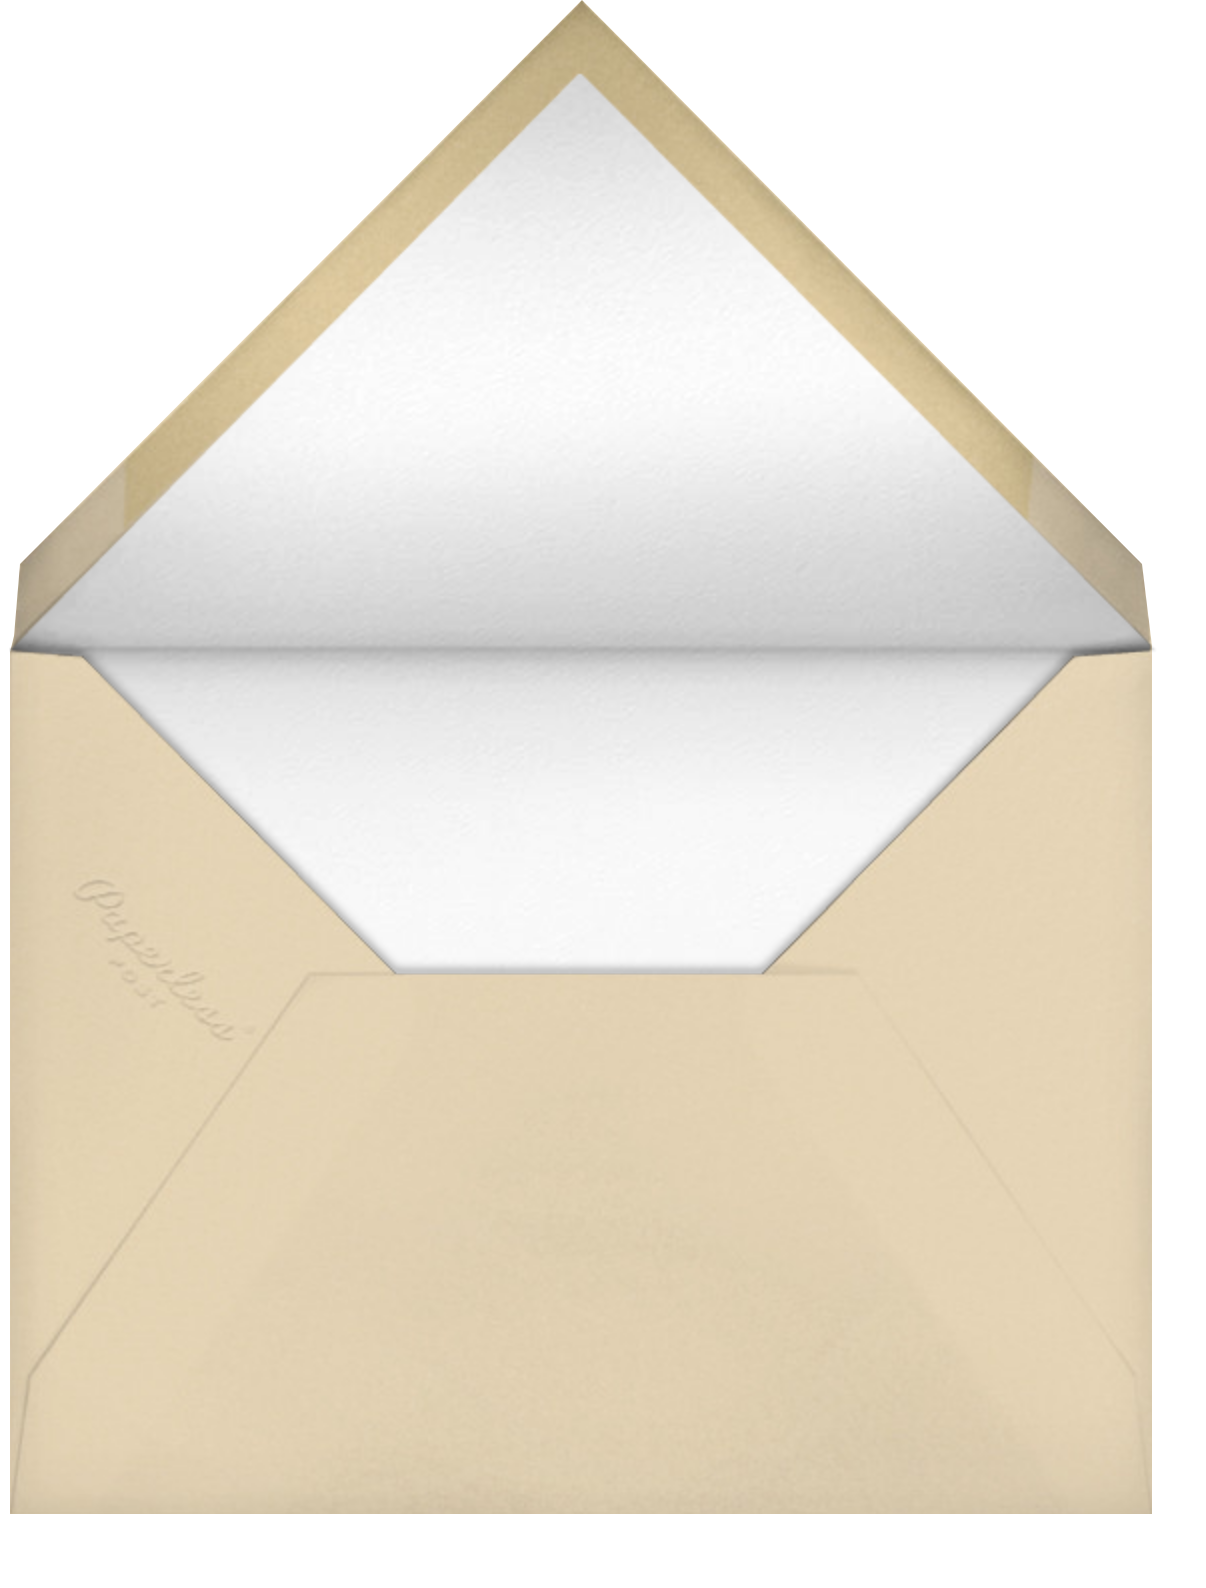 The Nifty '50s - Paperless Post - Luau party - envelope back